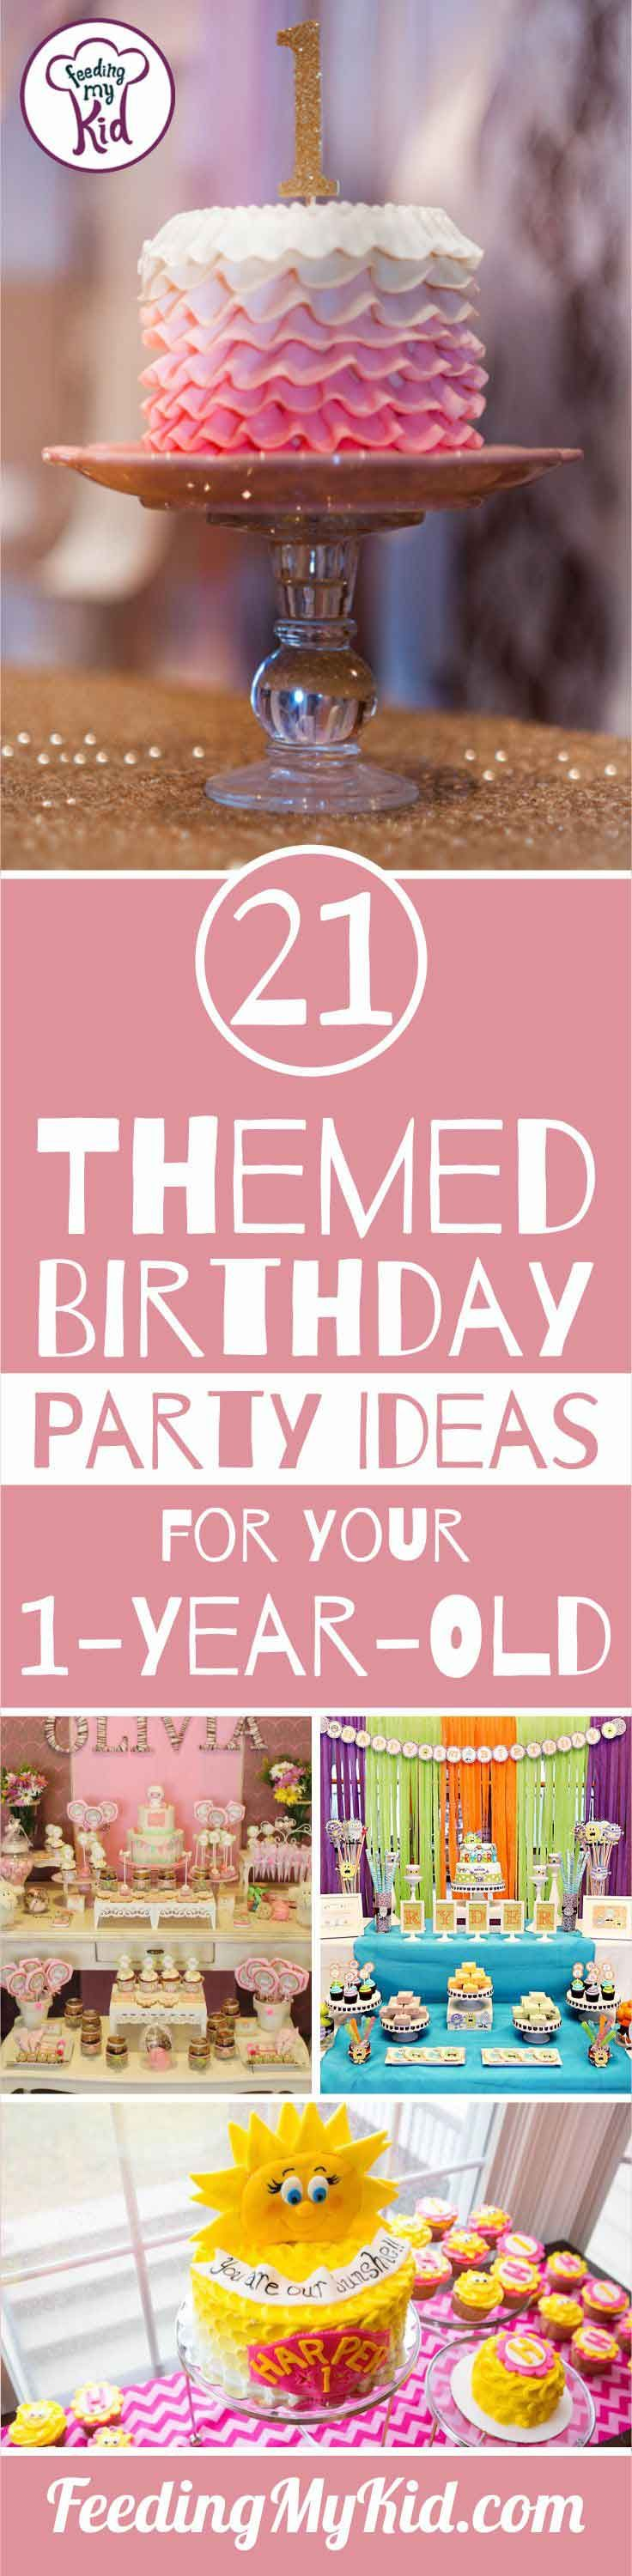 Birthday party themes for your oneyearold